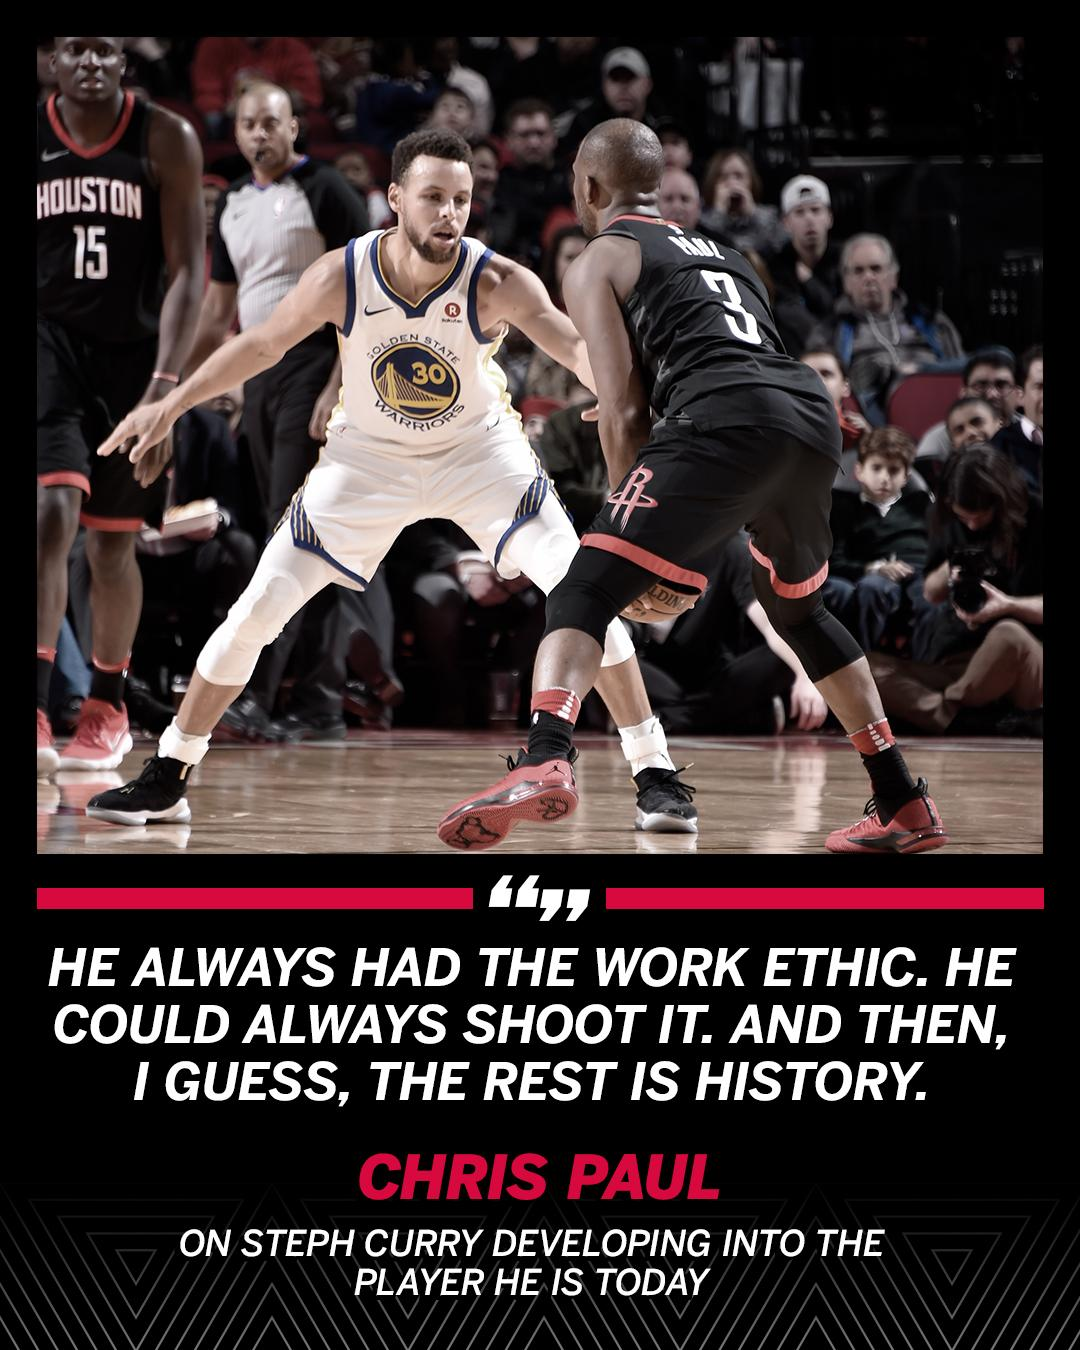 CP3 always knew Steph Curry had the potential to be one of the NBA's best. https://t.co/fA1qc1iZ1a